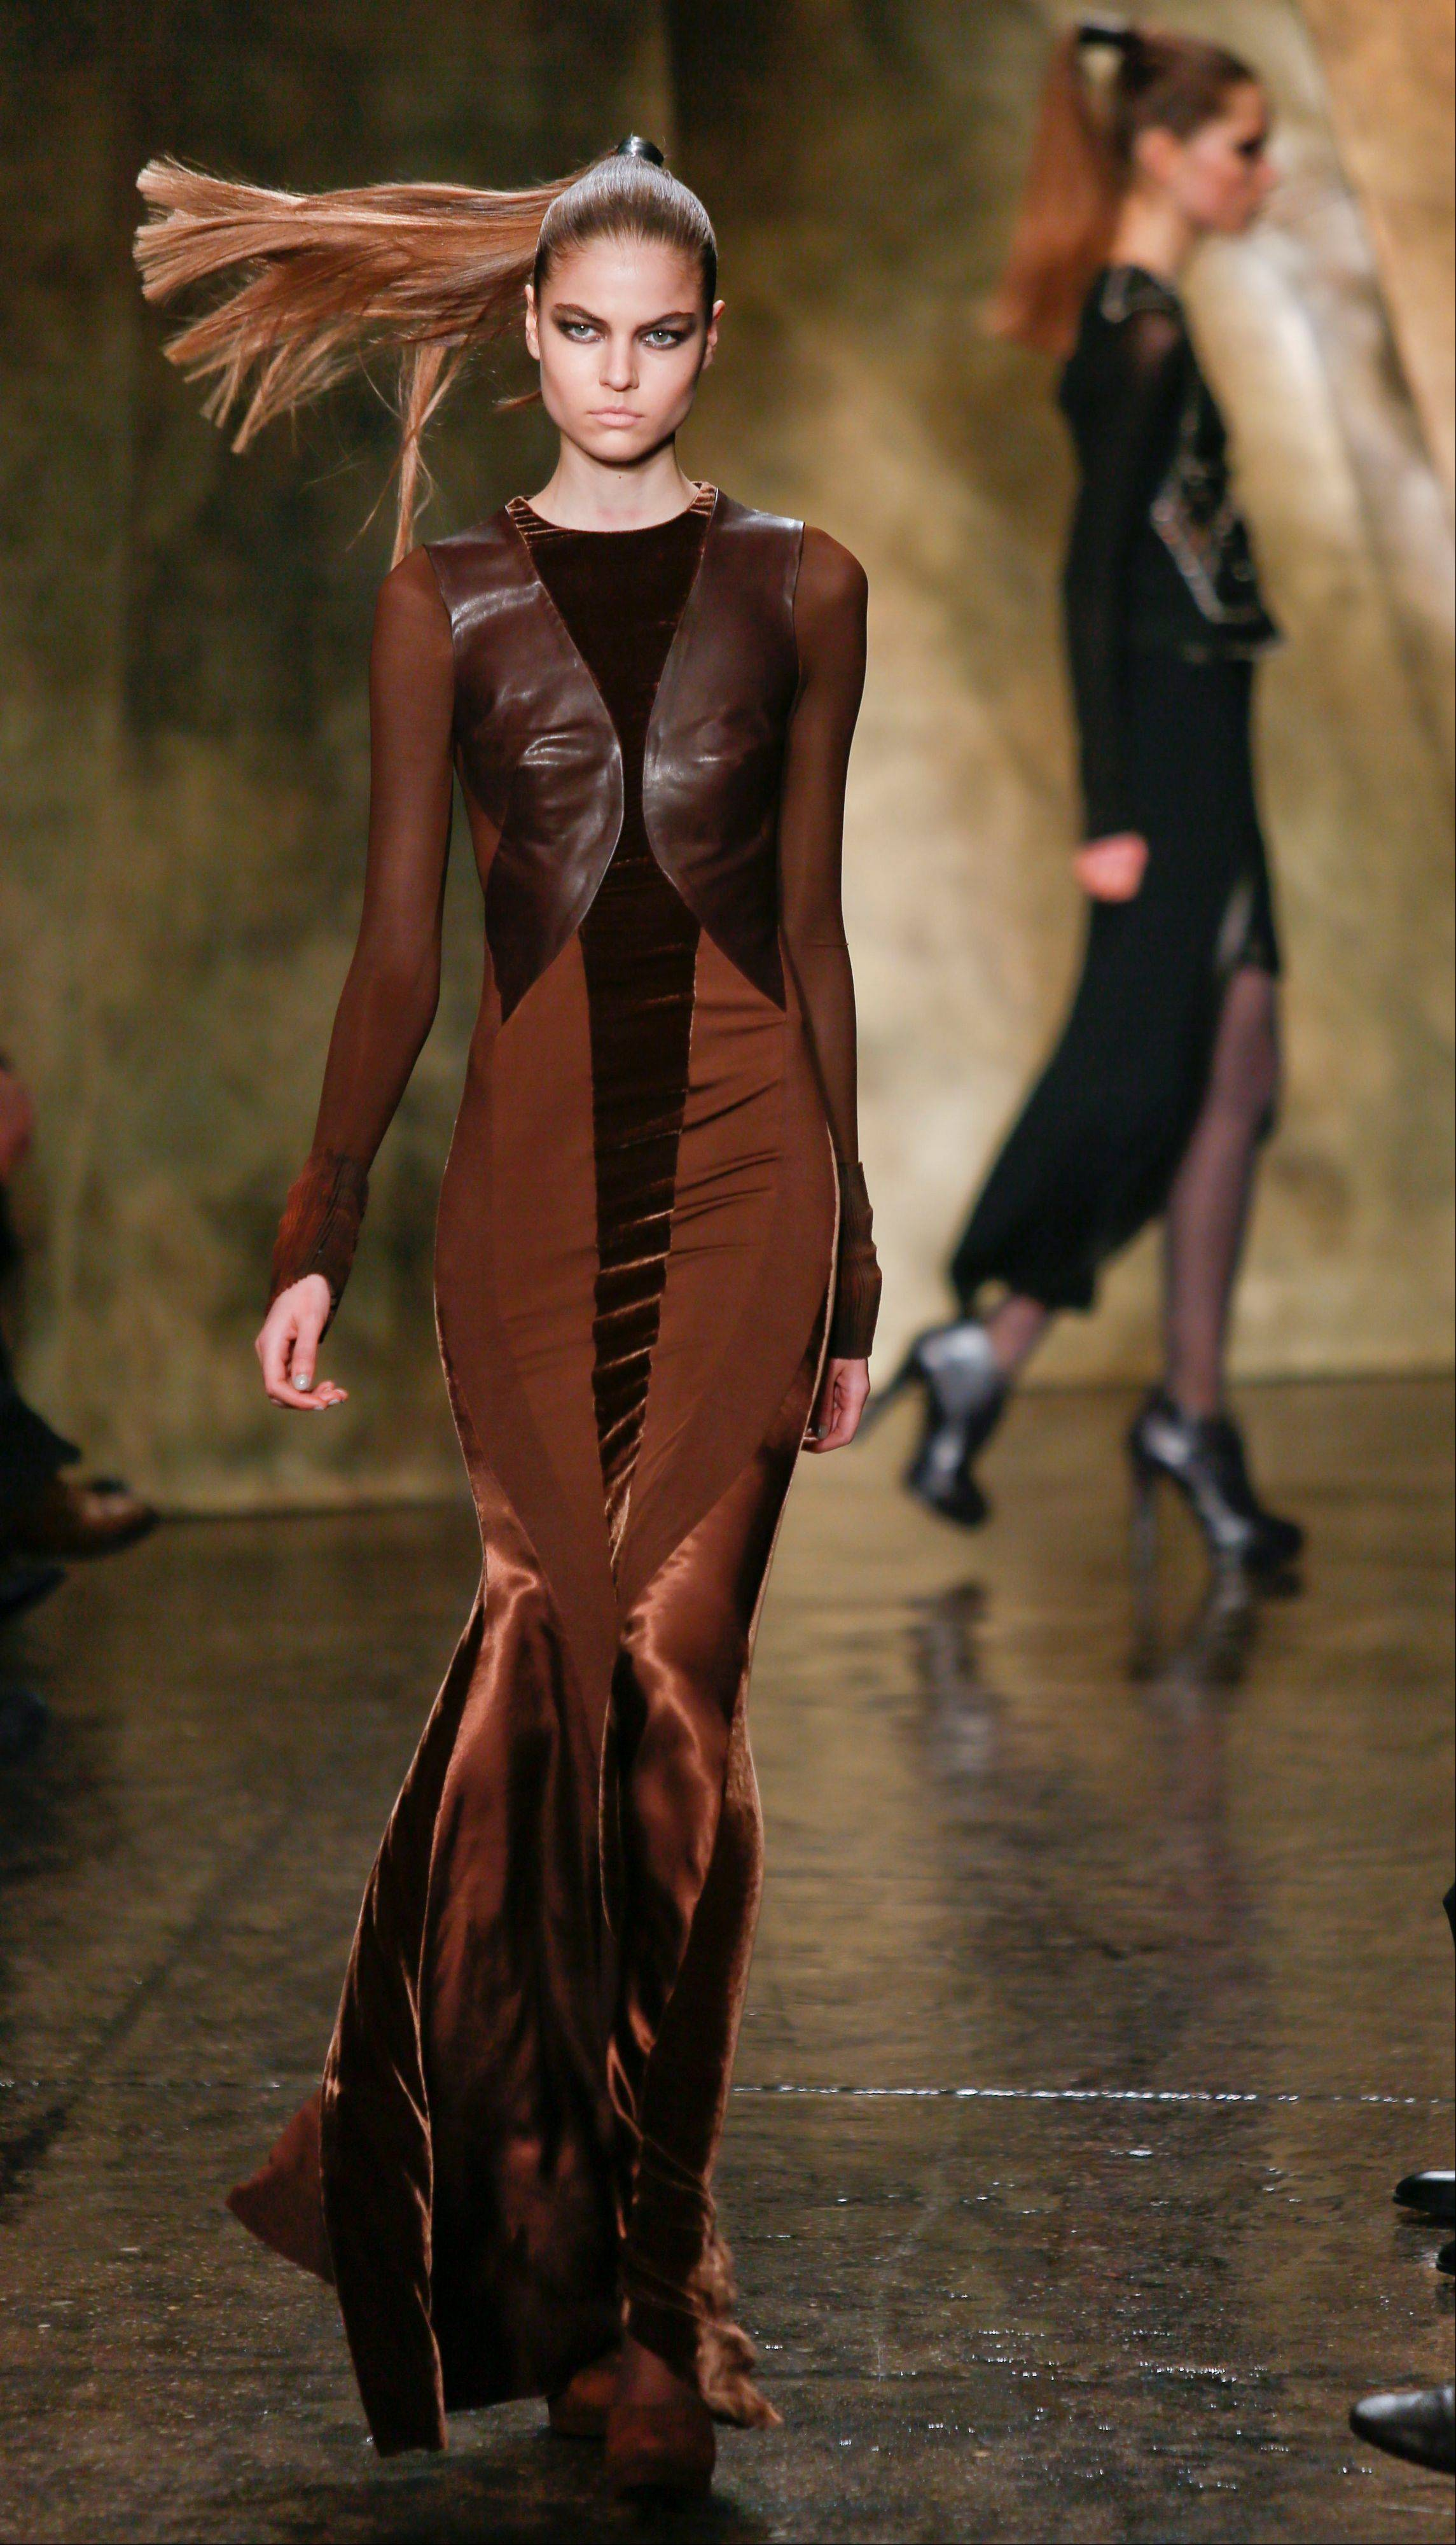 Fashion from the Fall 2013 collection of Donna Karan New York is modeled on Monday in New York.